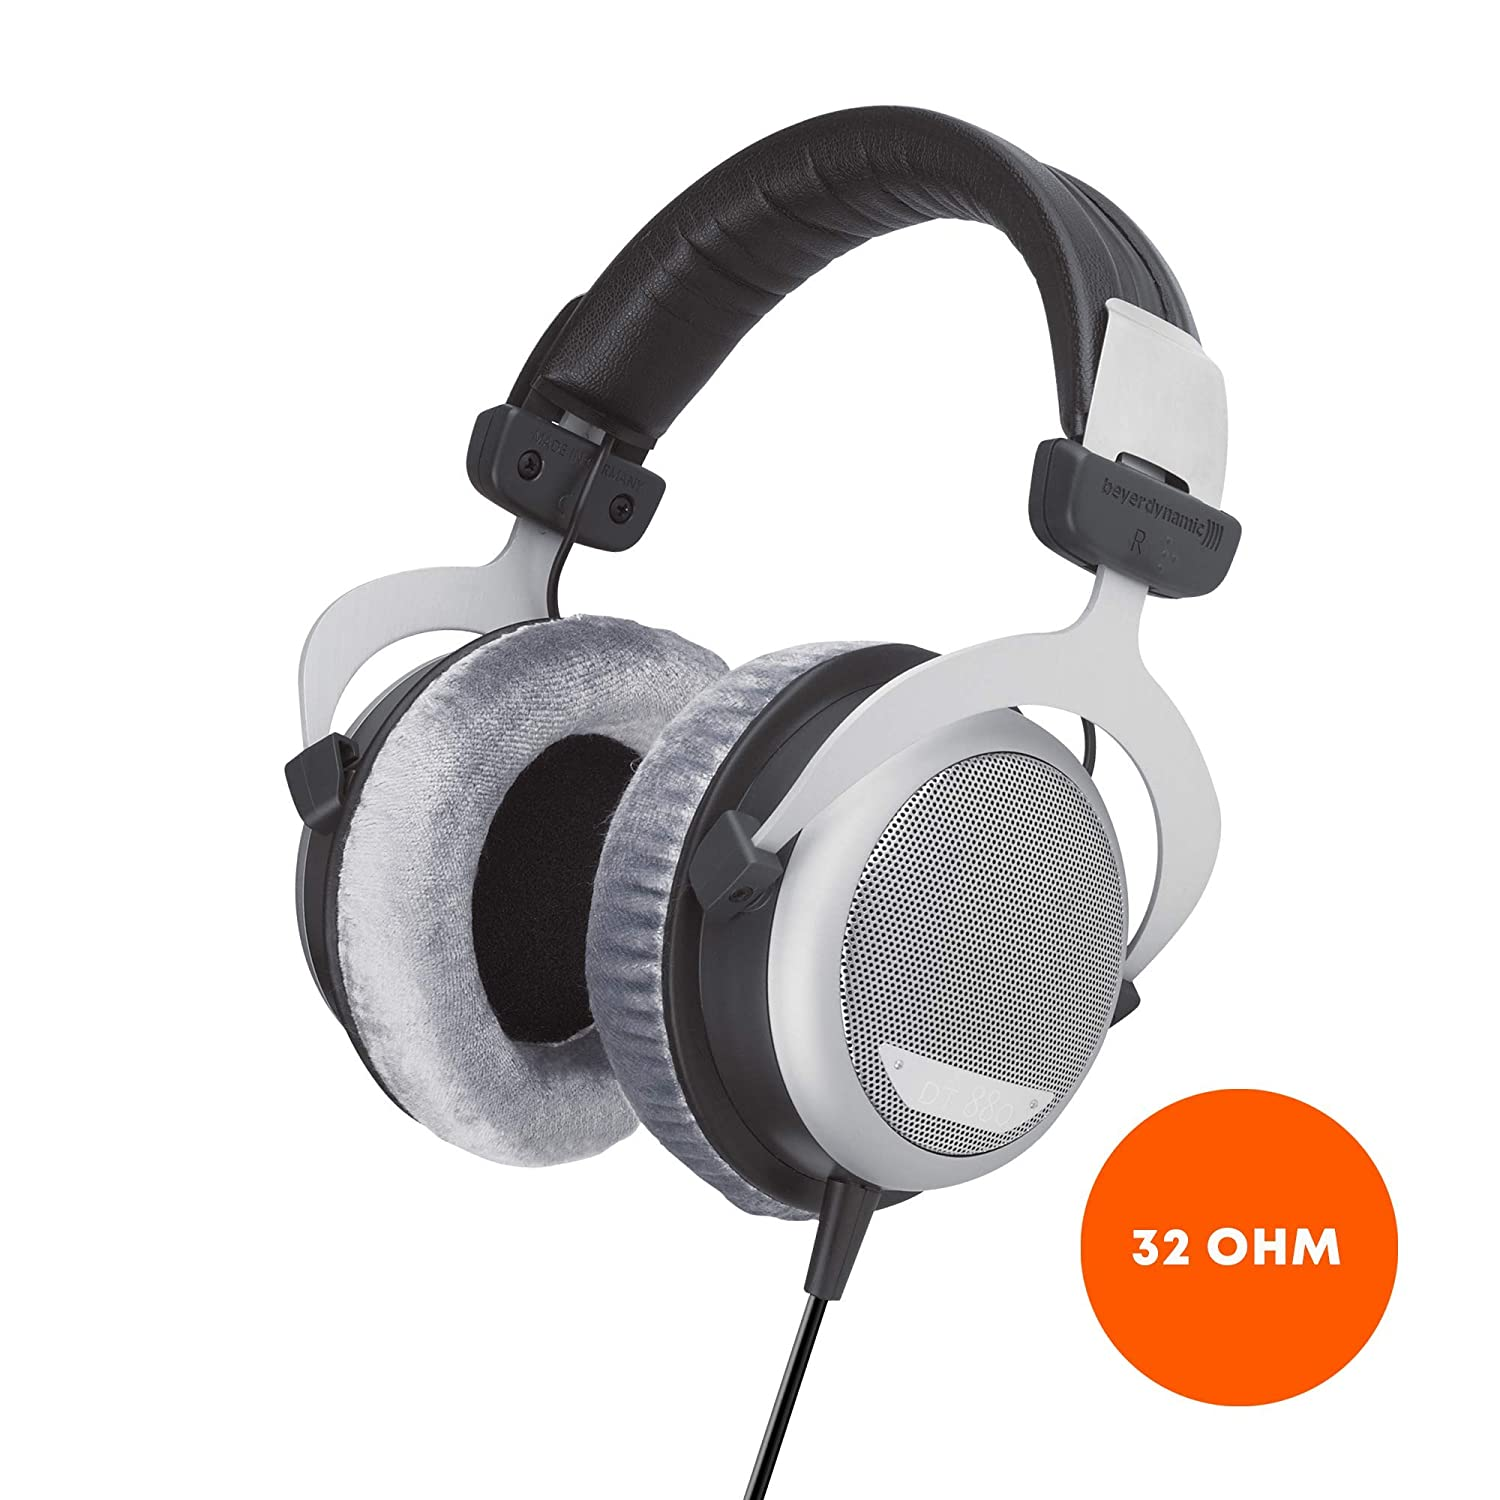 beyerdynamic DT 880 Premium Edition 32 Ohm Over-Ear-Stereo Headphones. Semi-Open Design, Wired, high-end, for Tablet and Smartphone